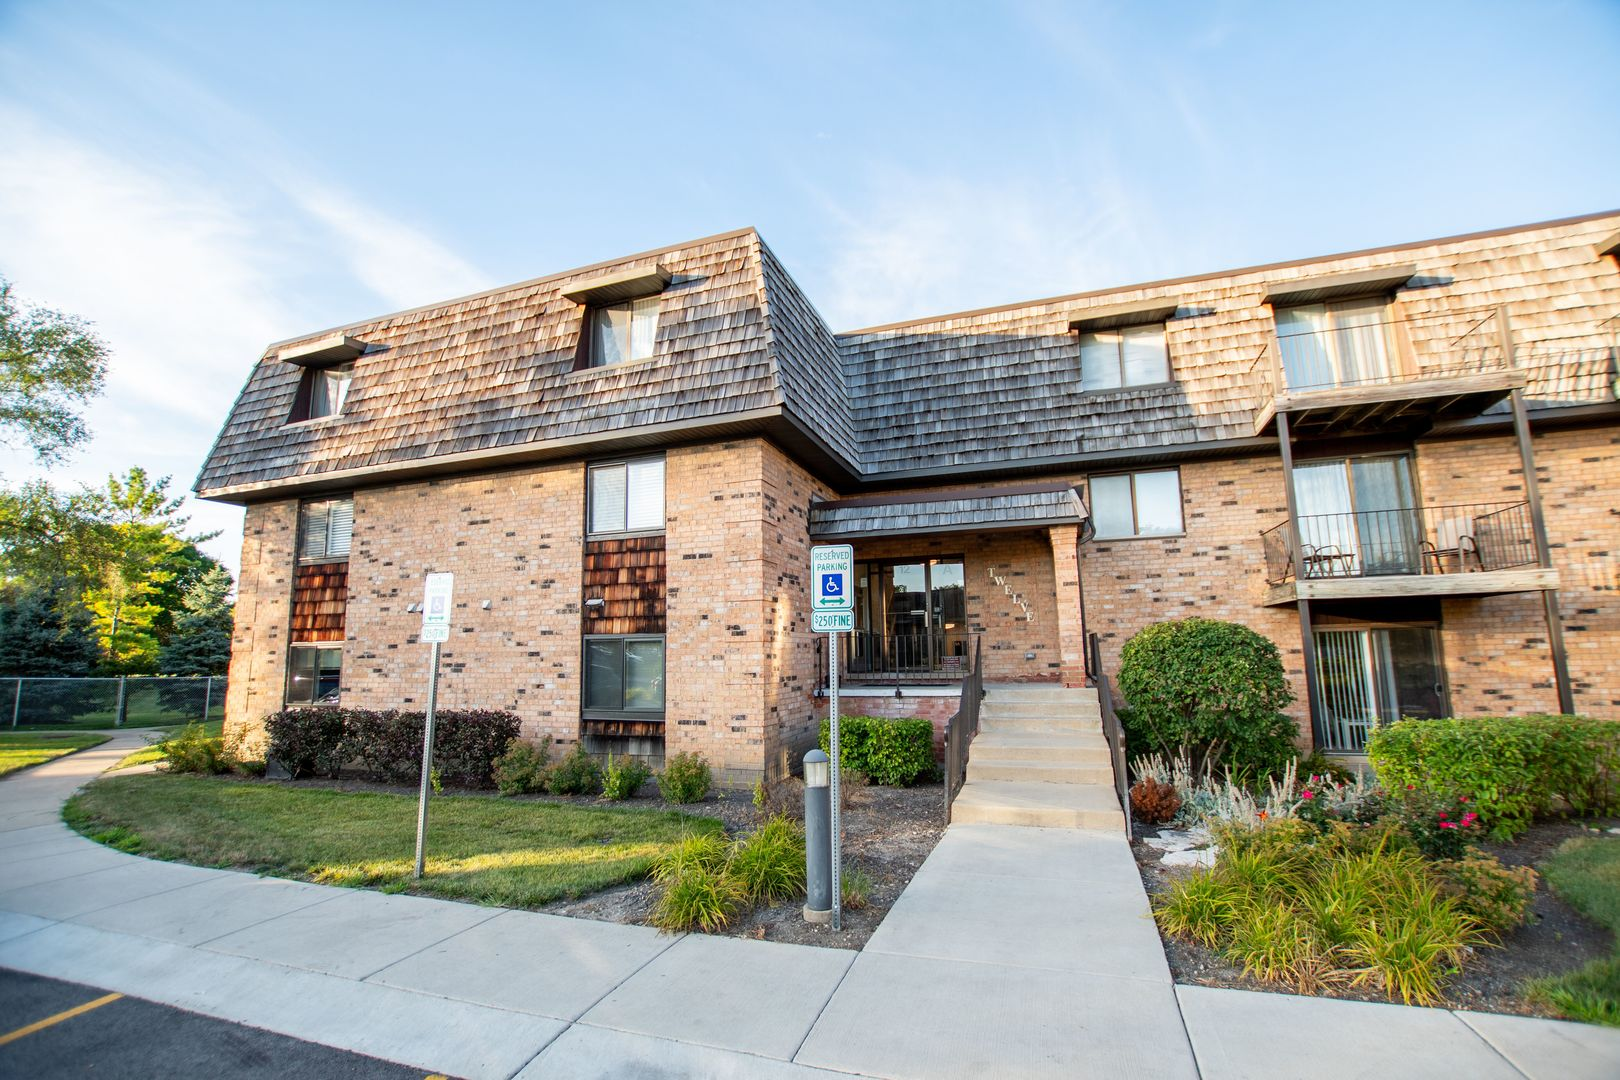 12 Oak Creek Unit Unit 2220 ,Buffalo Grove, Illinois 60089